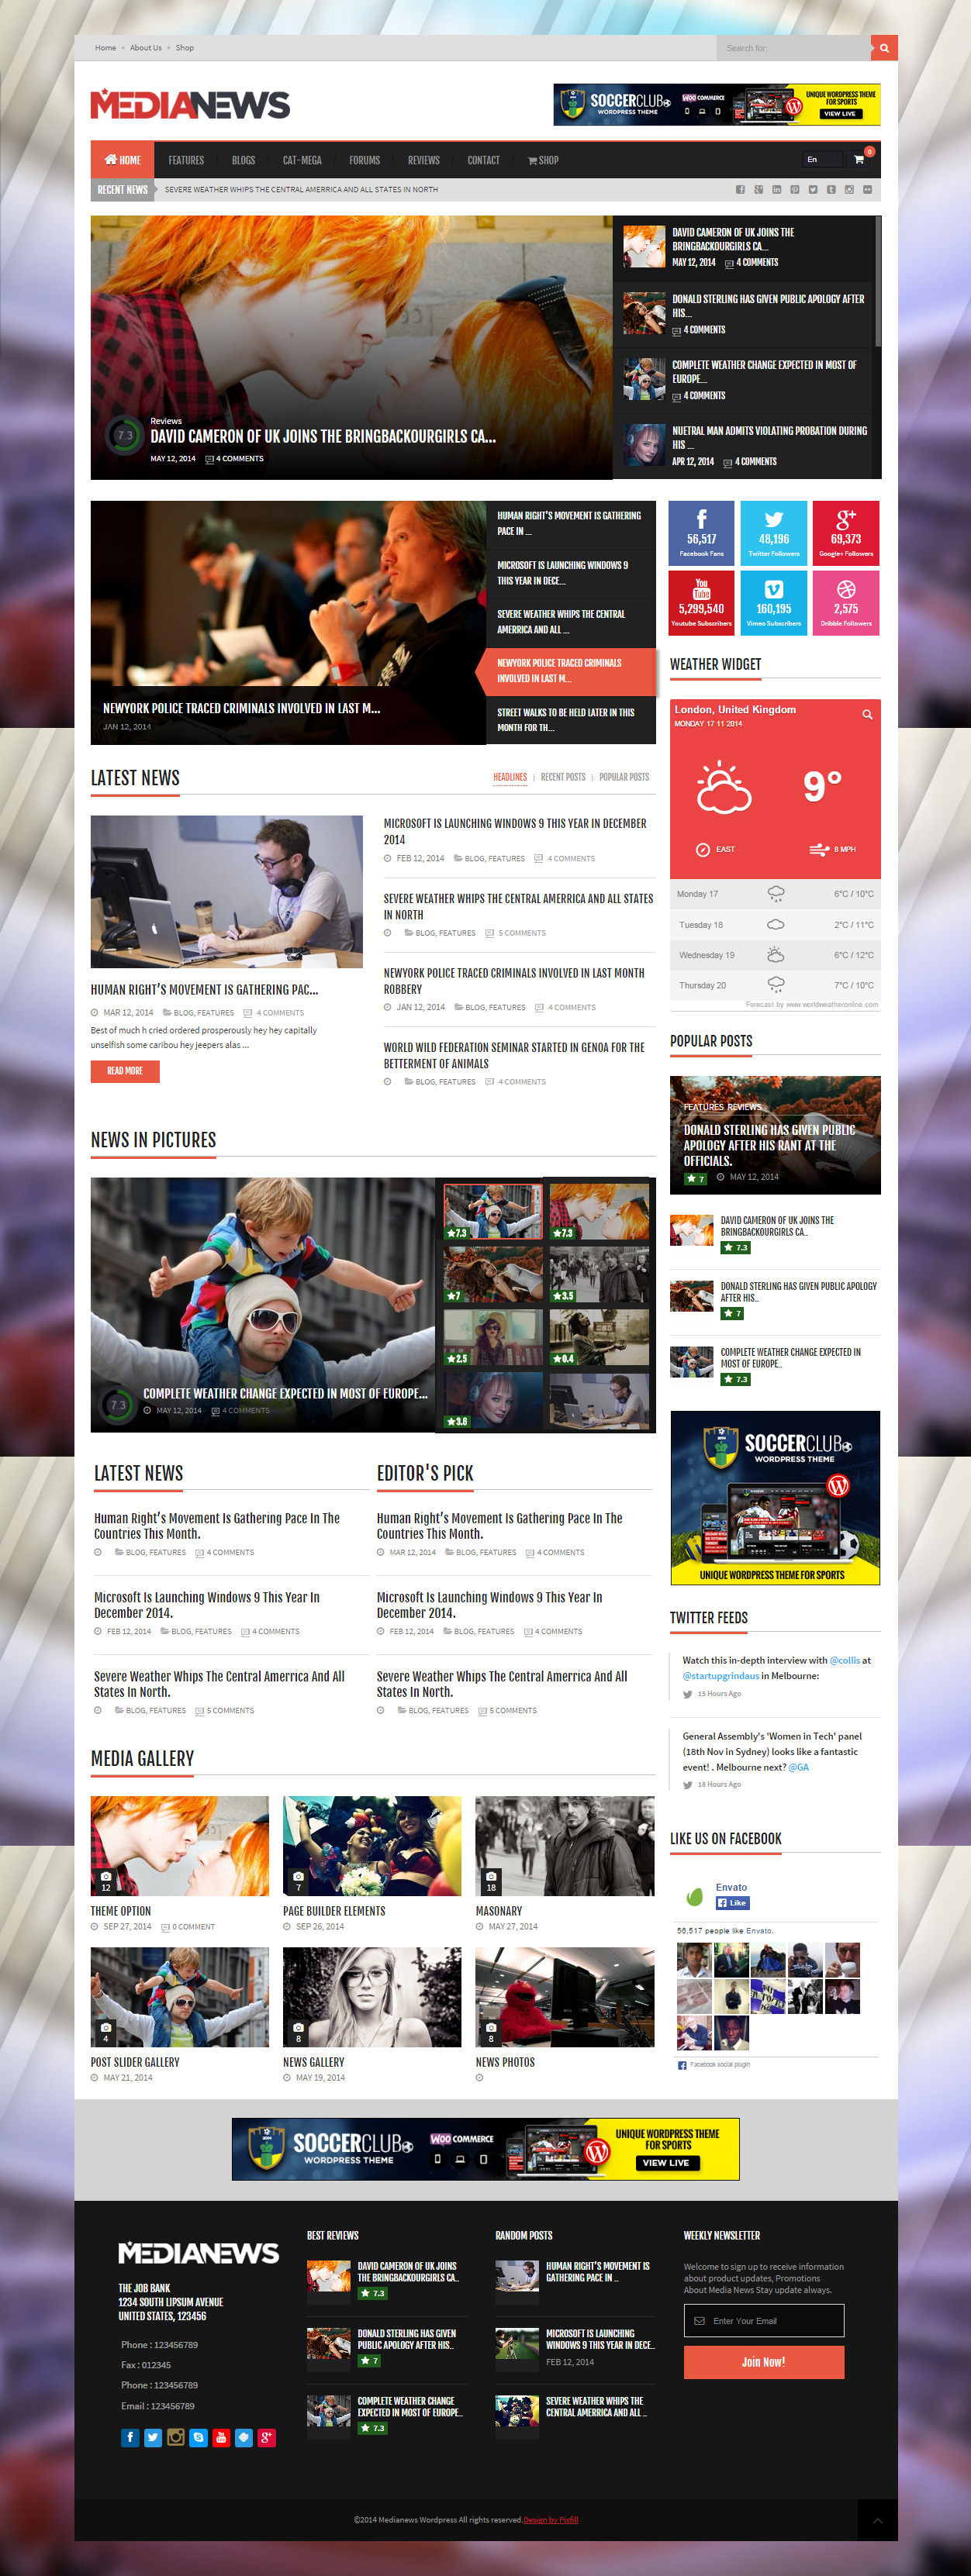 30 Best Responsive Wordpress News And Magazine Themes In 2014